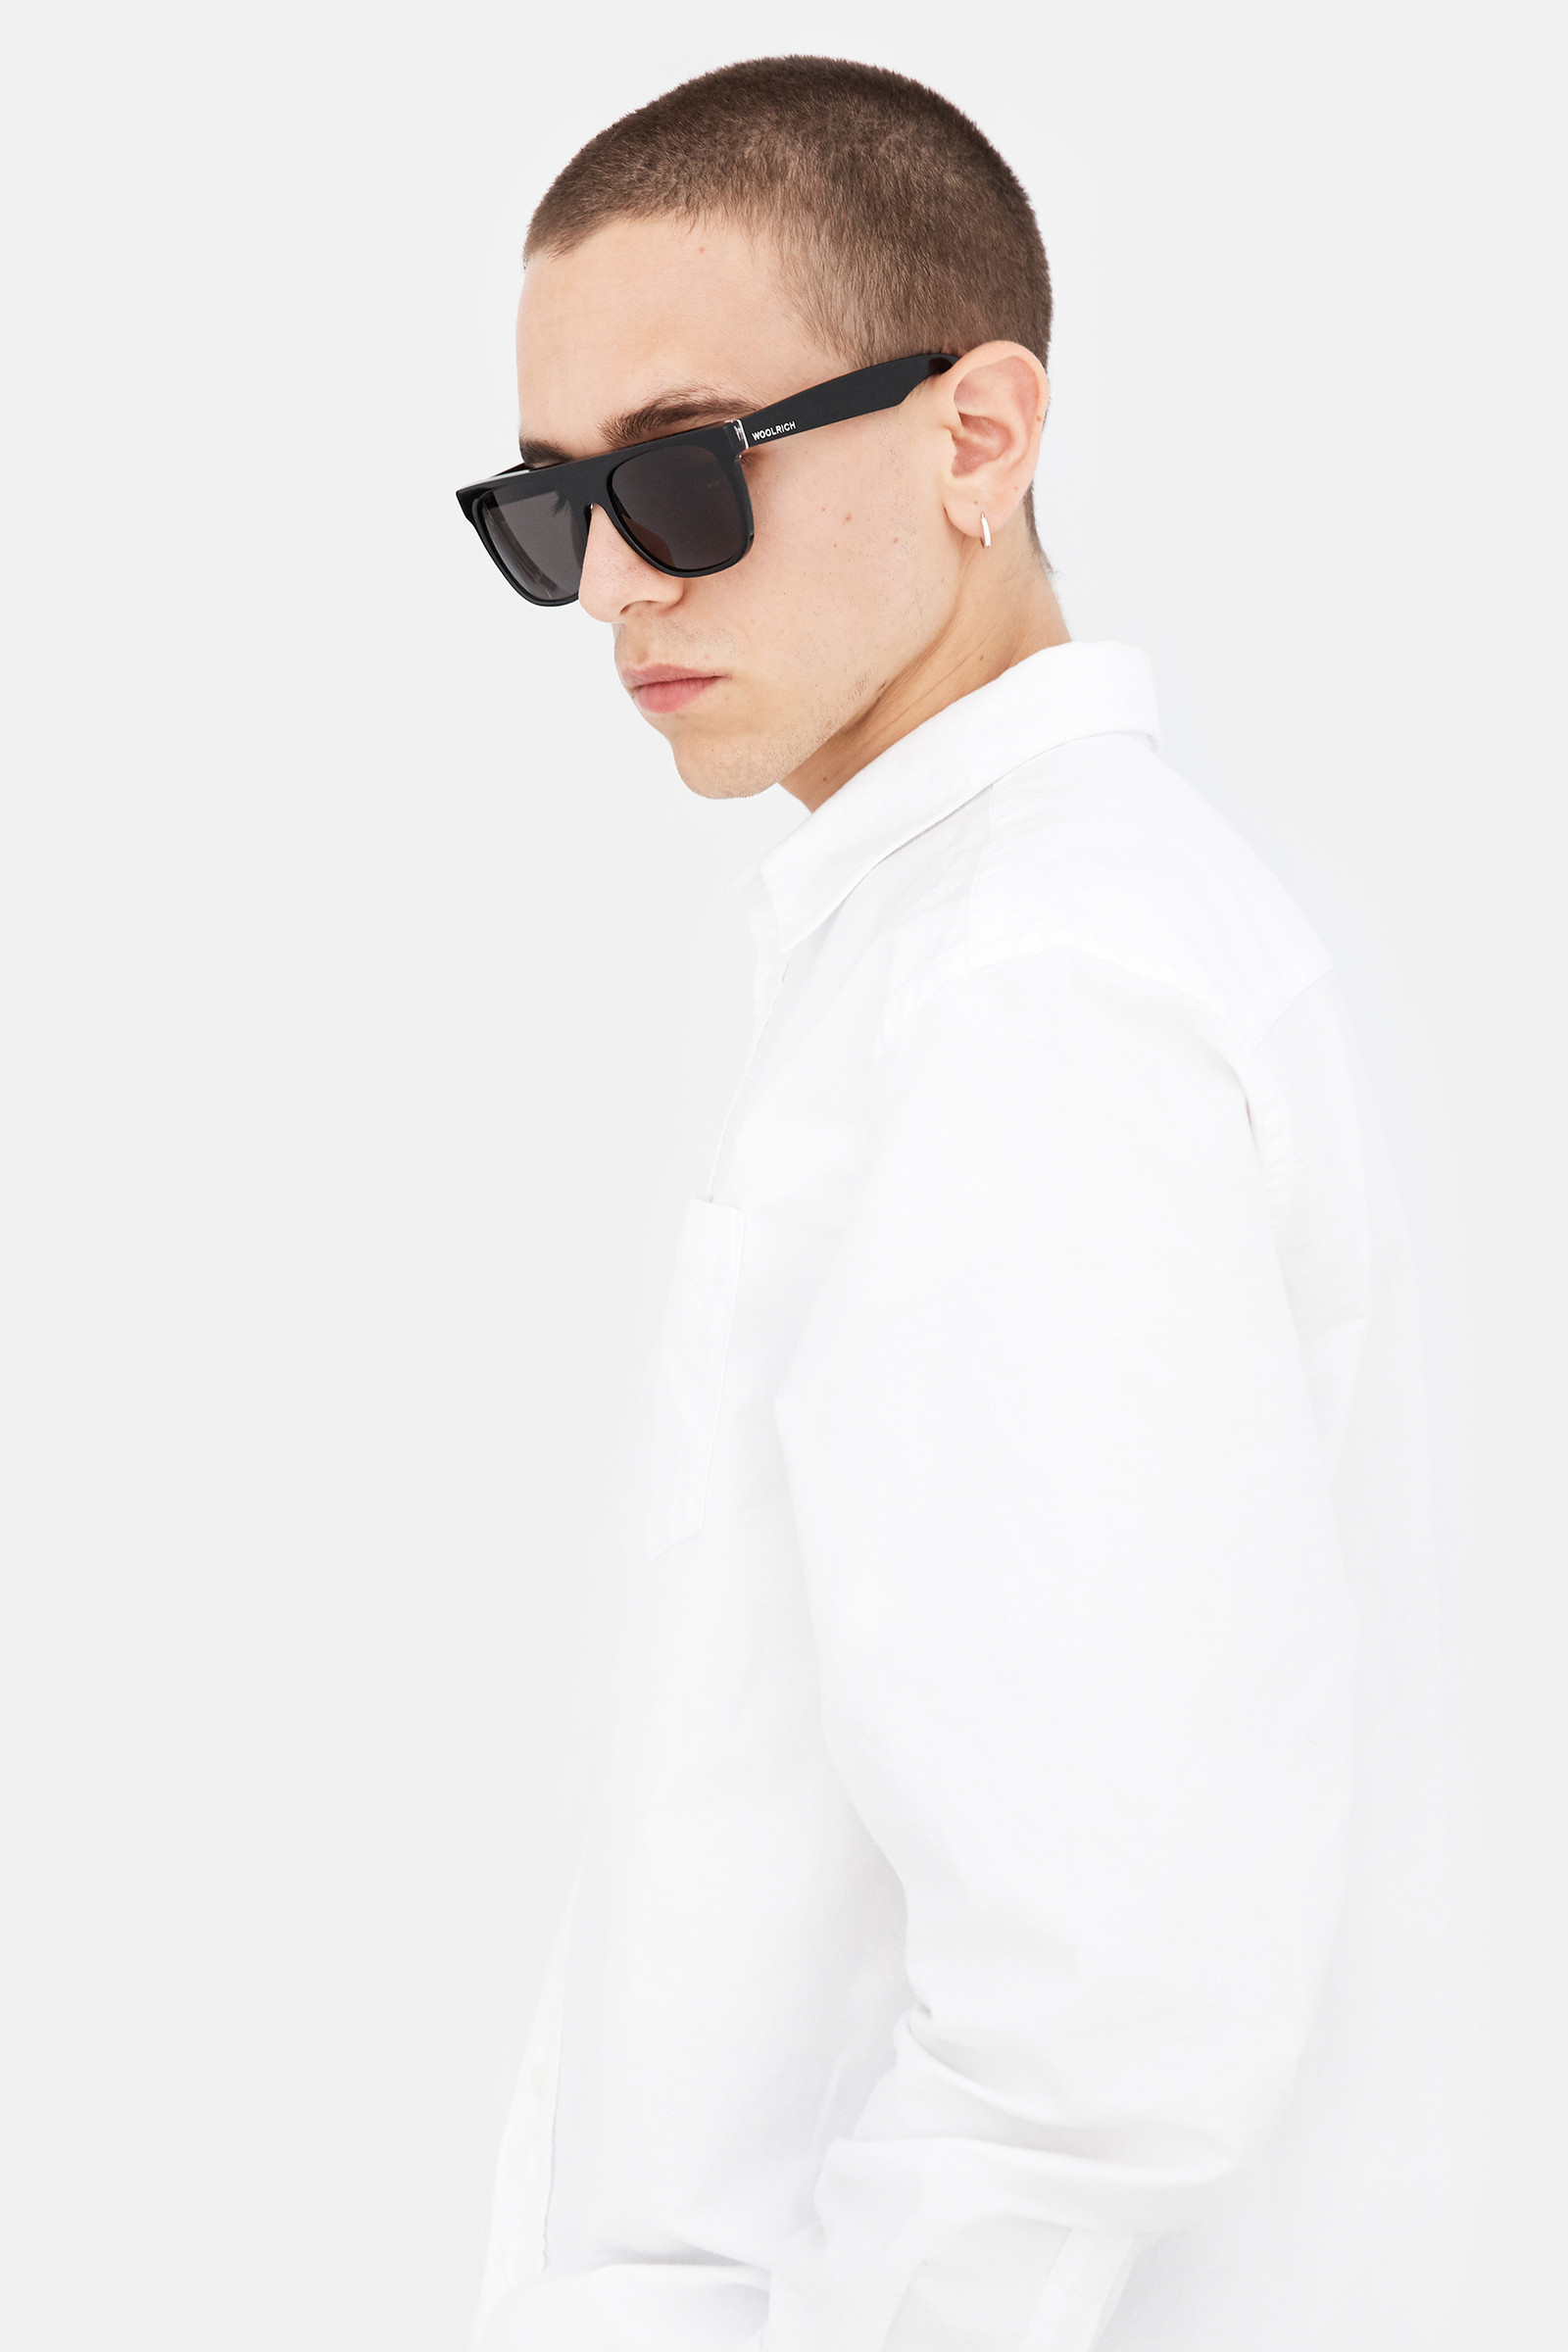 RSF x Woolrich Flat Top Sunglasses